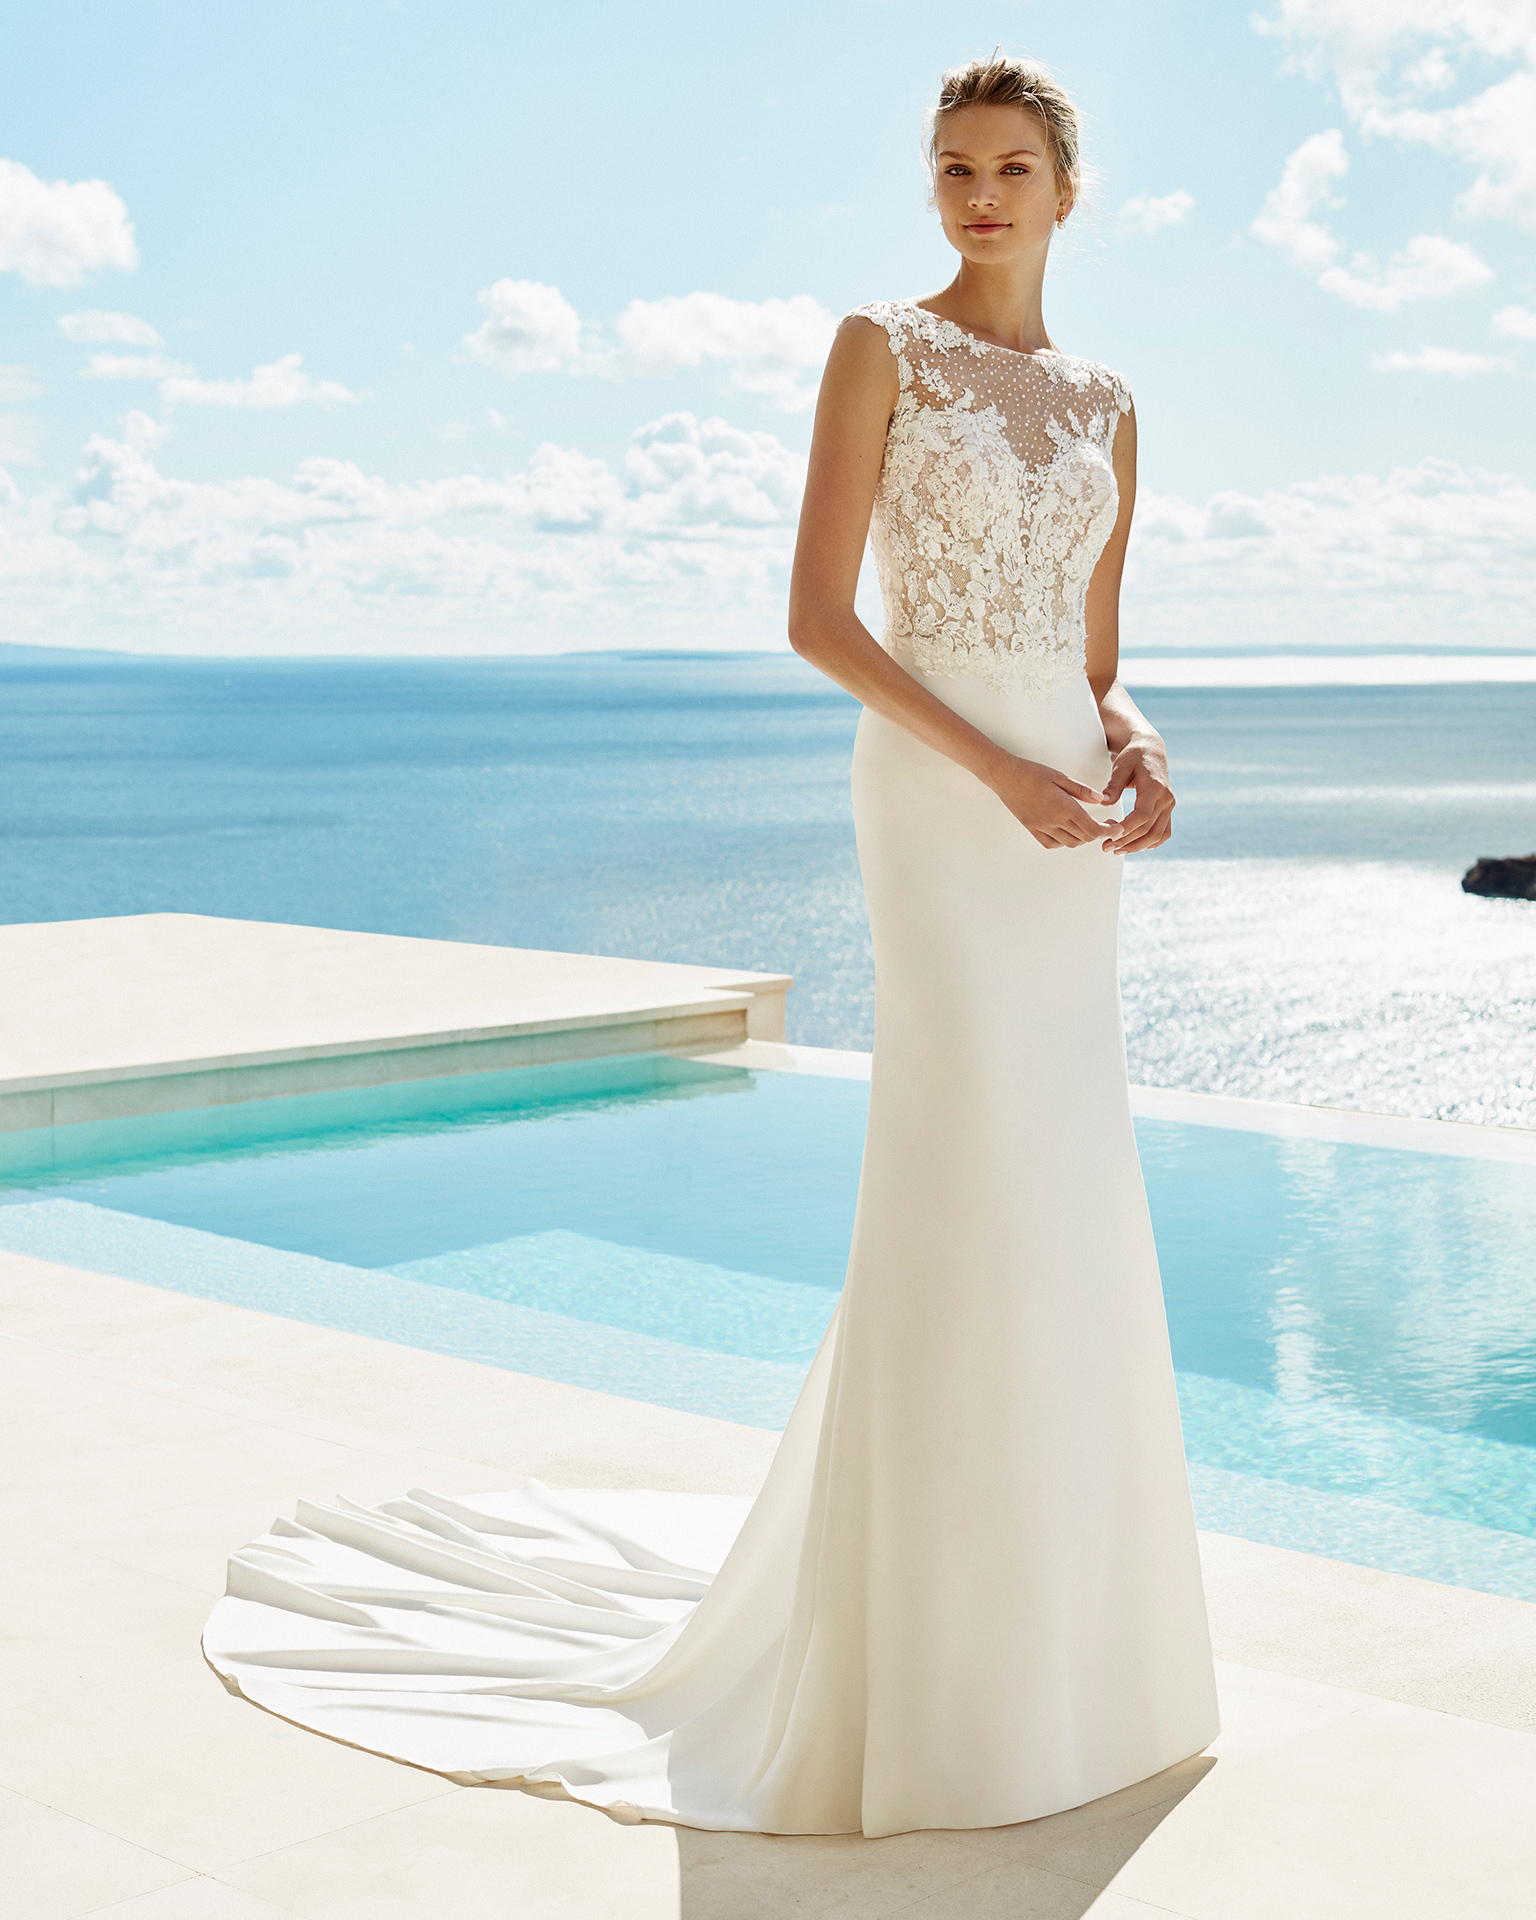 Robe de mariée coupe droite en crêpe et dentelle avec pierreries. Col bateau et manches courtes. Disponible en couleur naturelle. Collection AIRE BEACH WEDDING 2019.